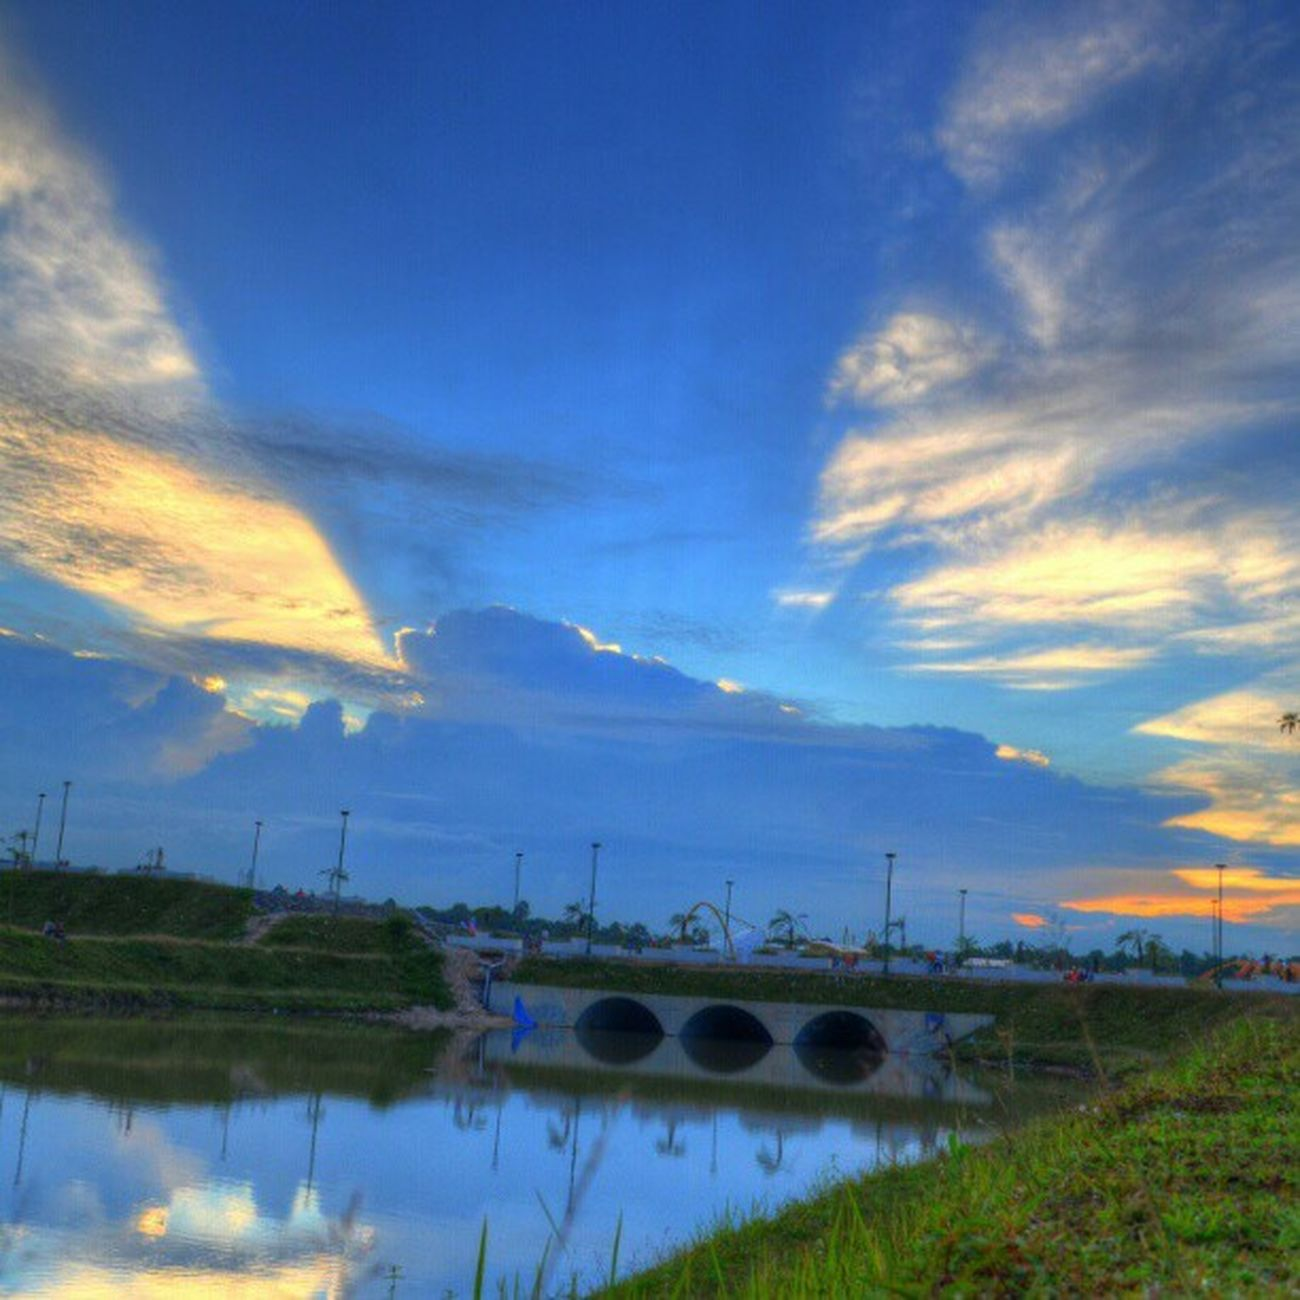 Sky highway. Wahyusyn Jj  James_favourite Skystyles_gf sky sunset all_sunset photooftheday blue lake reflection igers instagramhub instamood instagood damn i love beautifull awesome INDONESIA